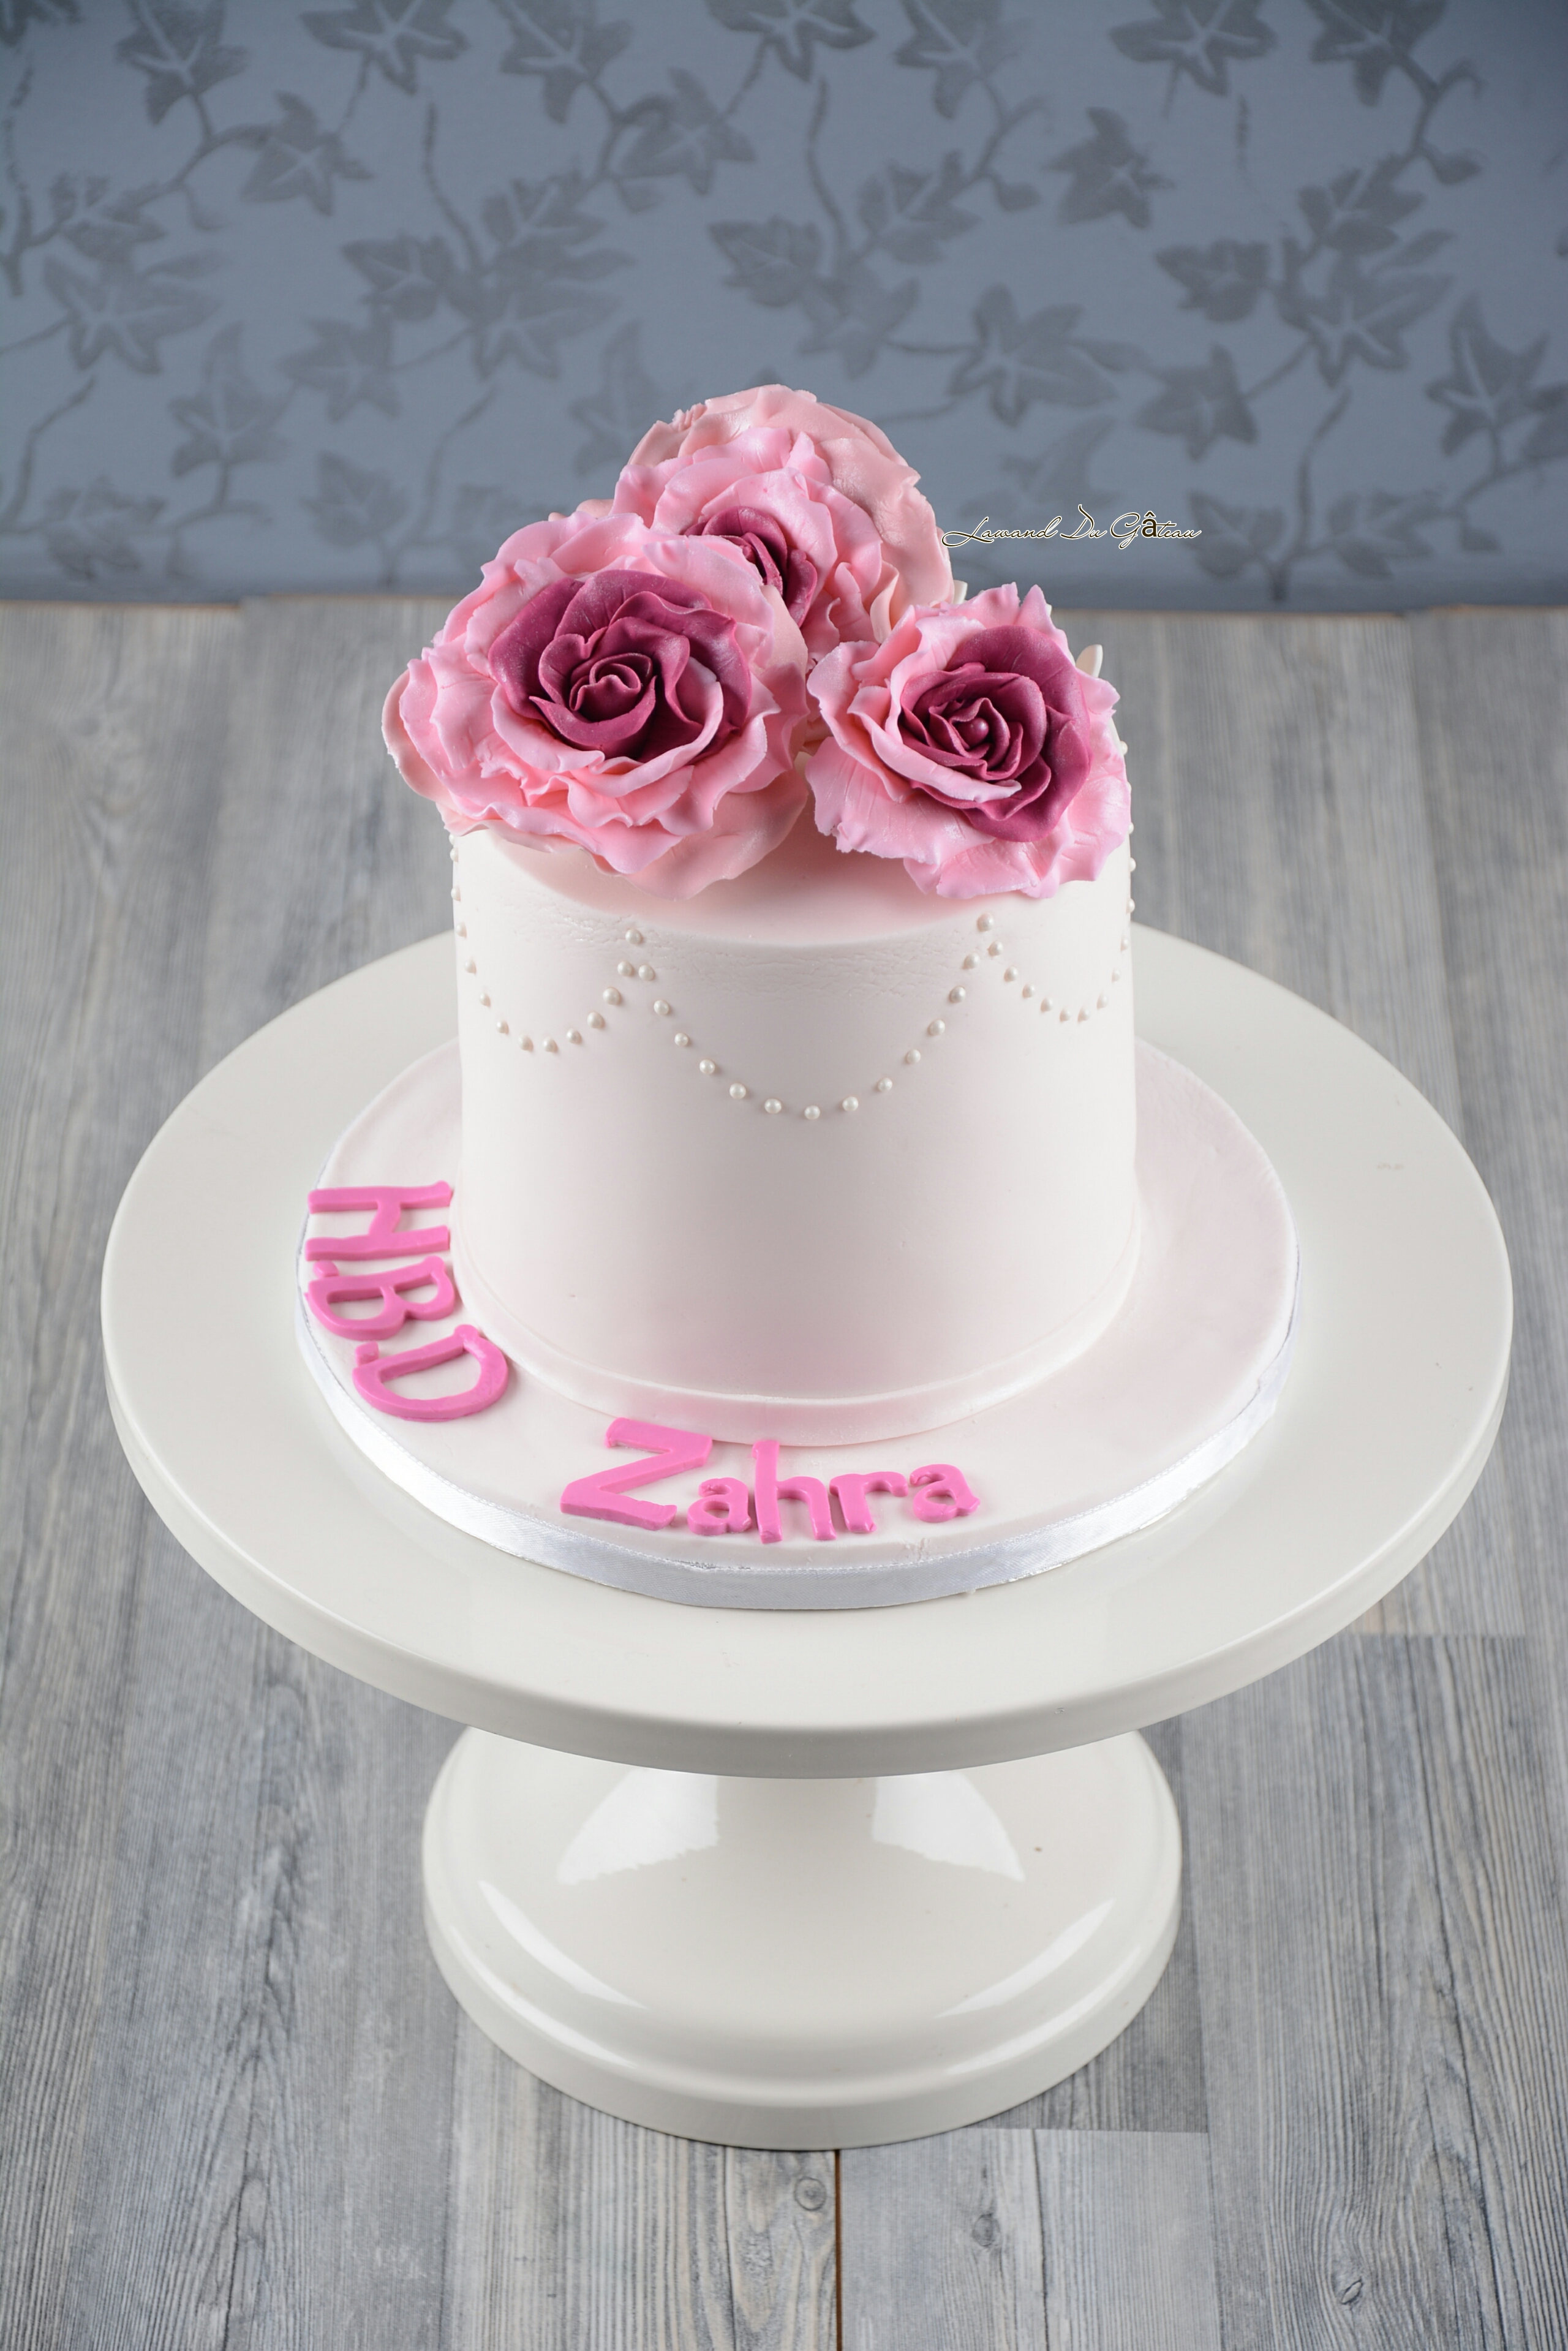 Mini white cake with pink sugar roses